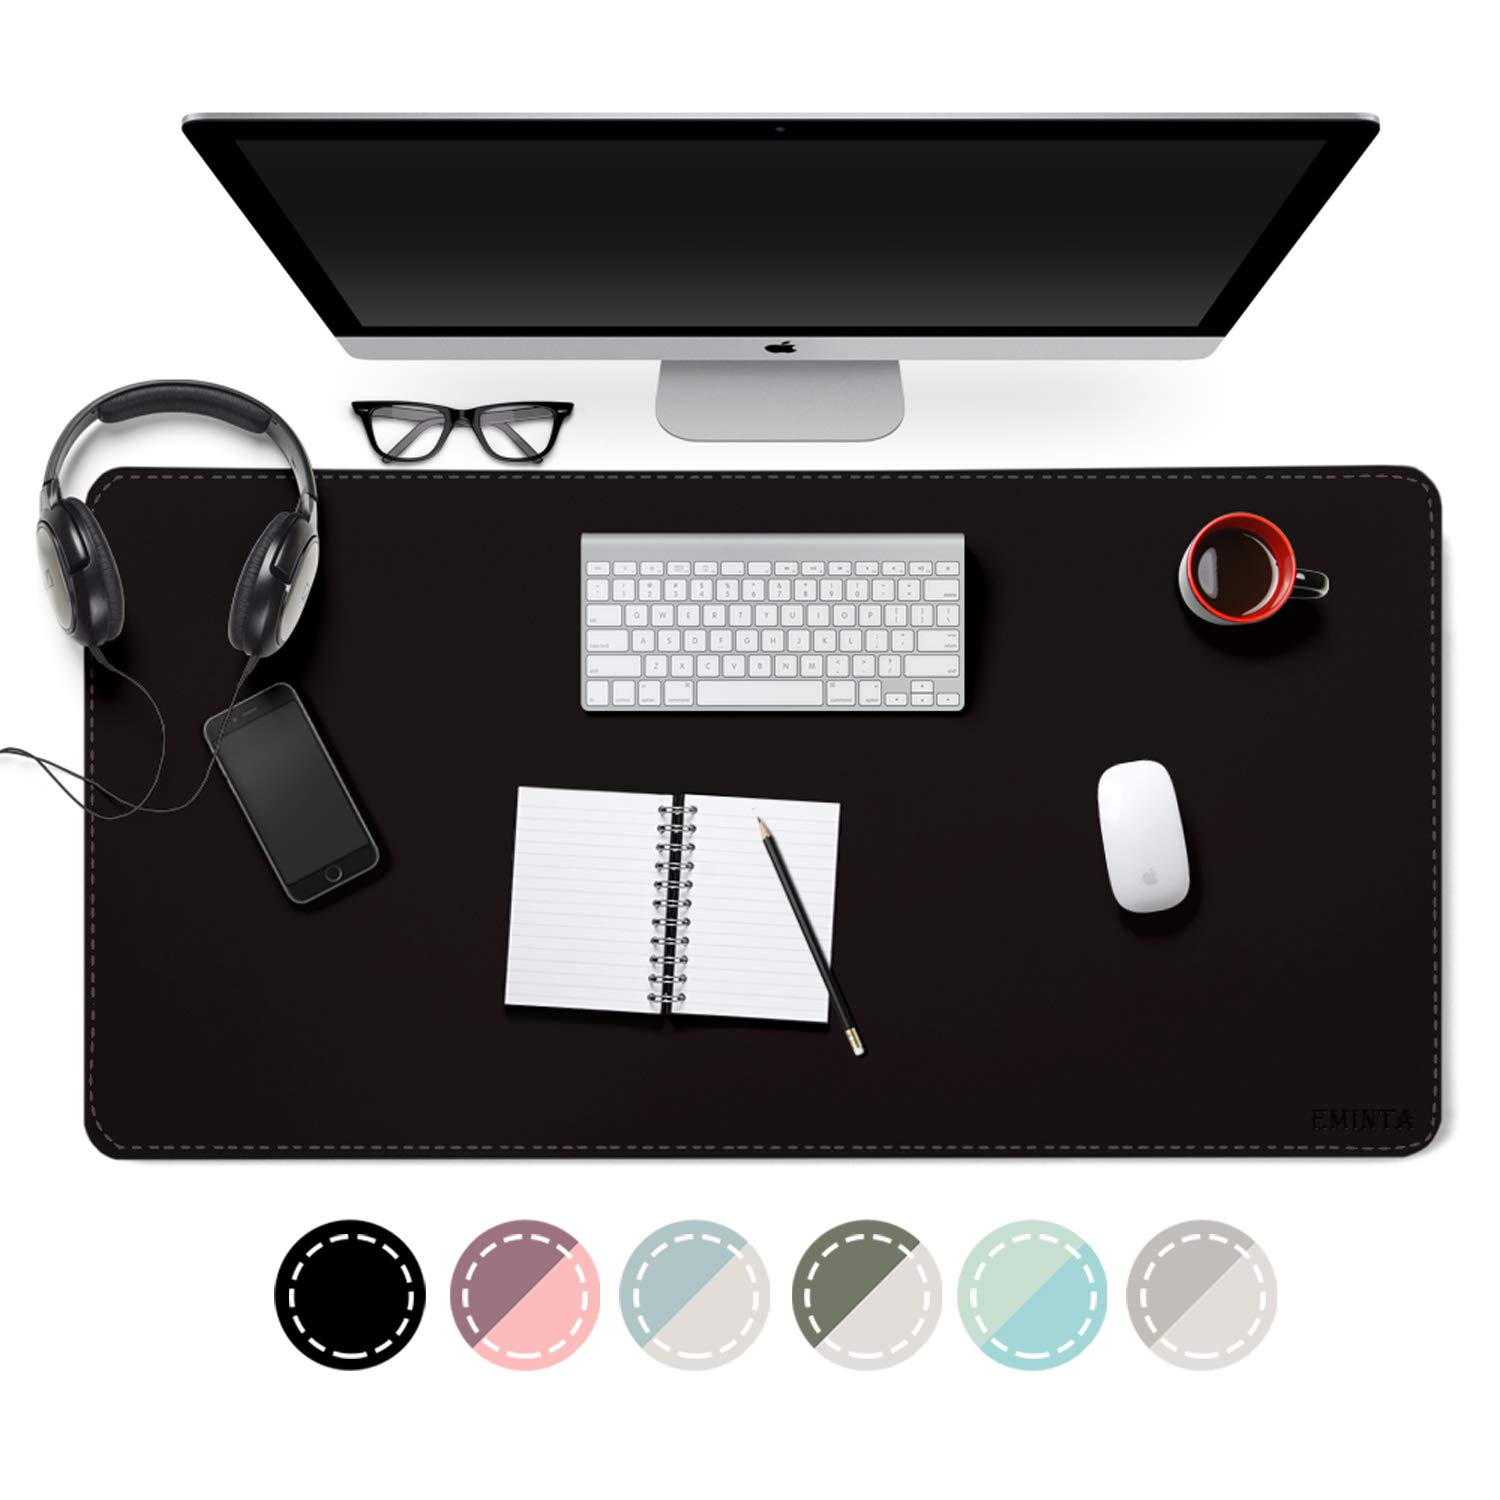 "EMINTA Dual Sided Desk Pad, 2019 Upgrade Sewing PU Leather Office Desk Mat, Waterproof Desk Blotter Protector, Desk Writing Mat Mouse Pad (Classical Black, 31.5"" x 15.7"")"